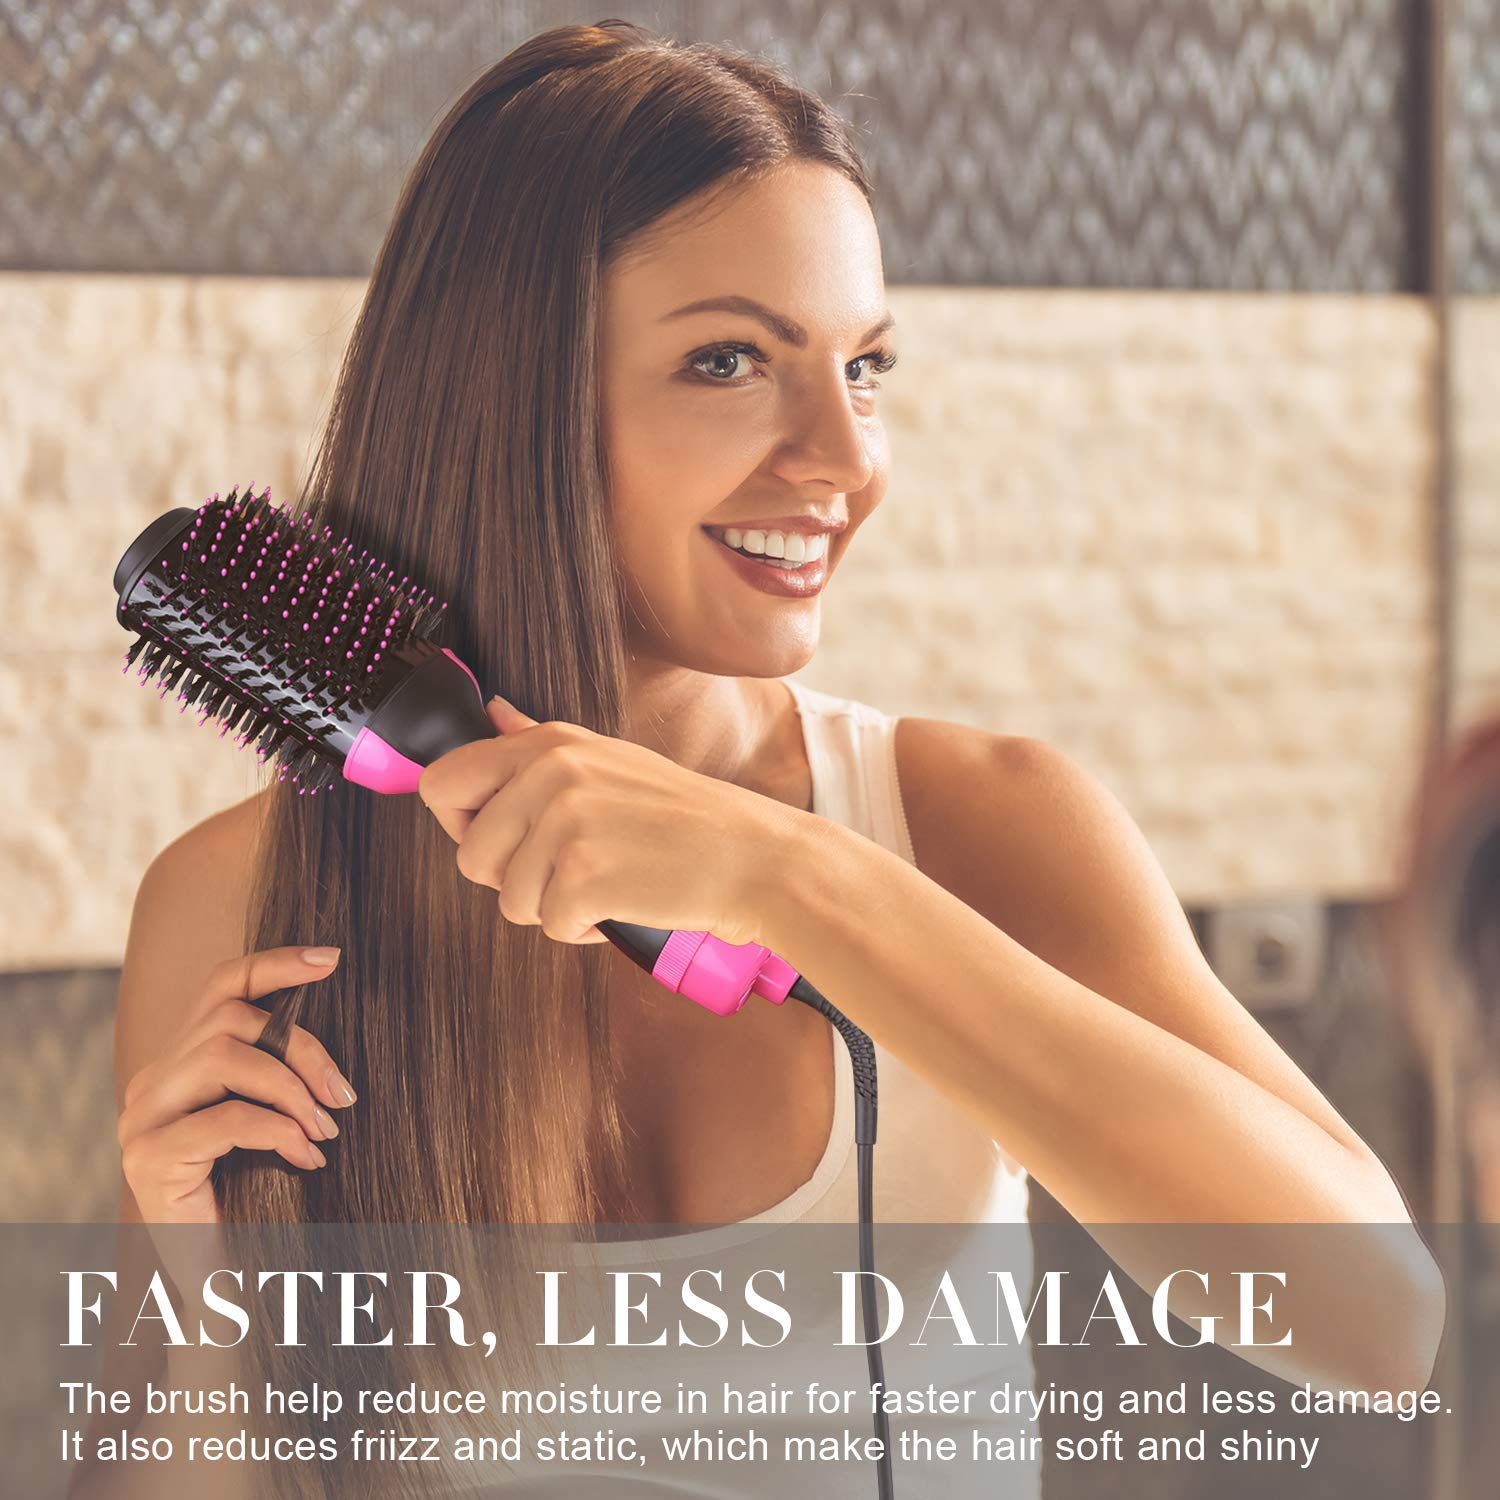 One-Step Hair Dryer Volumizer,Hair Dryer Brush 2-in-1 Multi-functional Negative Ion Hair Straightener Curler Brush Reduce Frizz and Static for All Hair Types, 4pcs Hair Clips